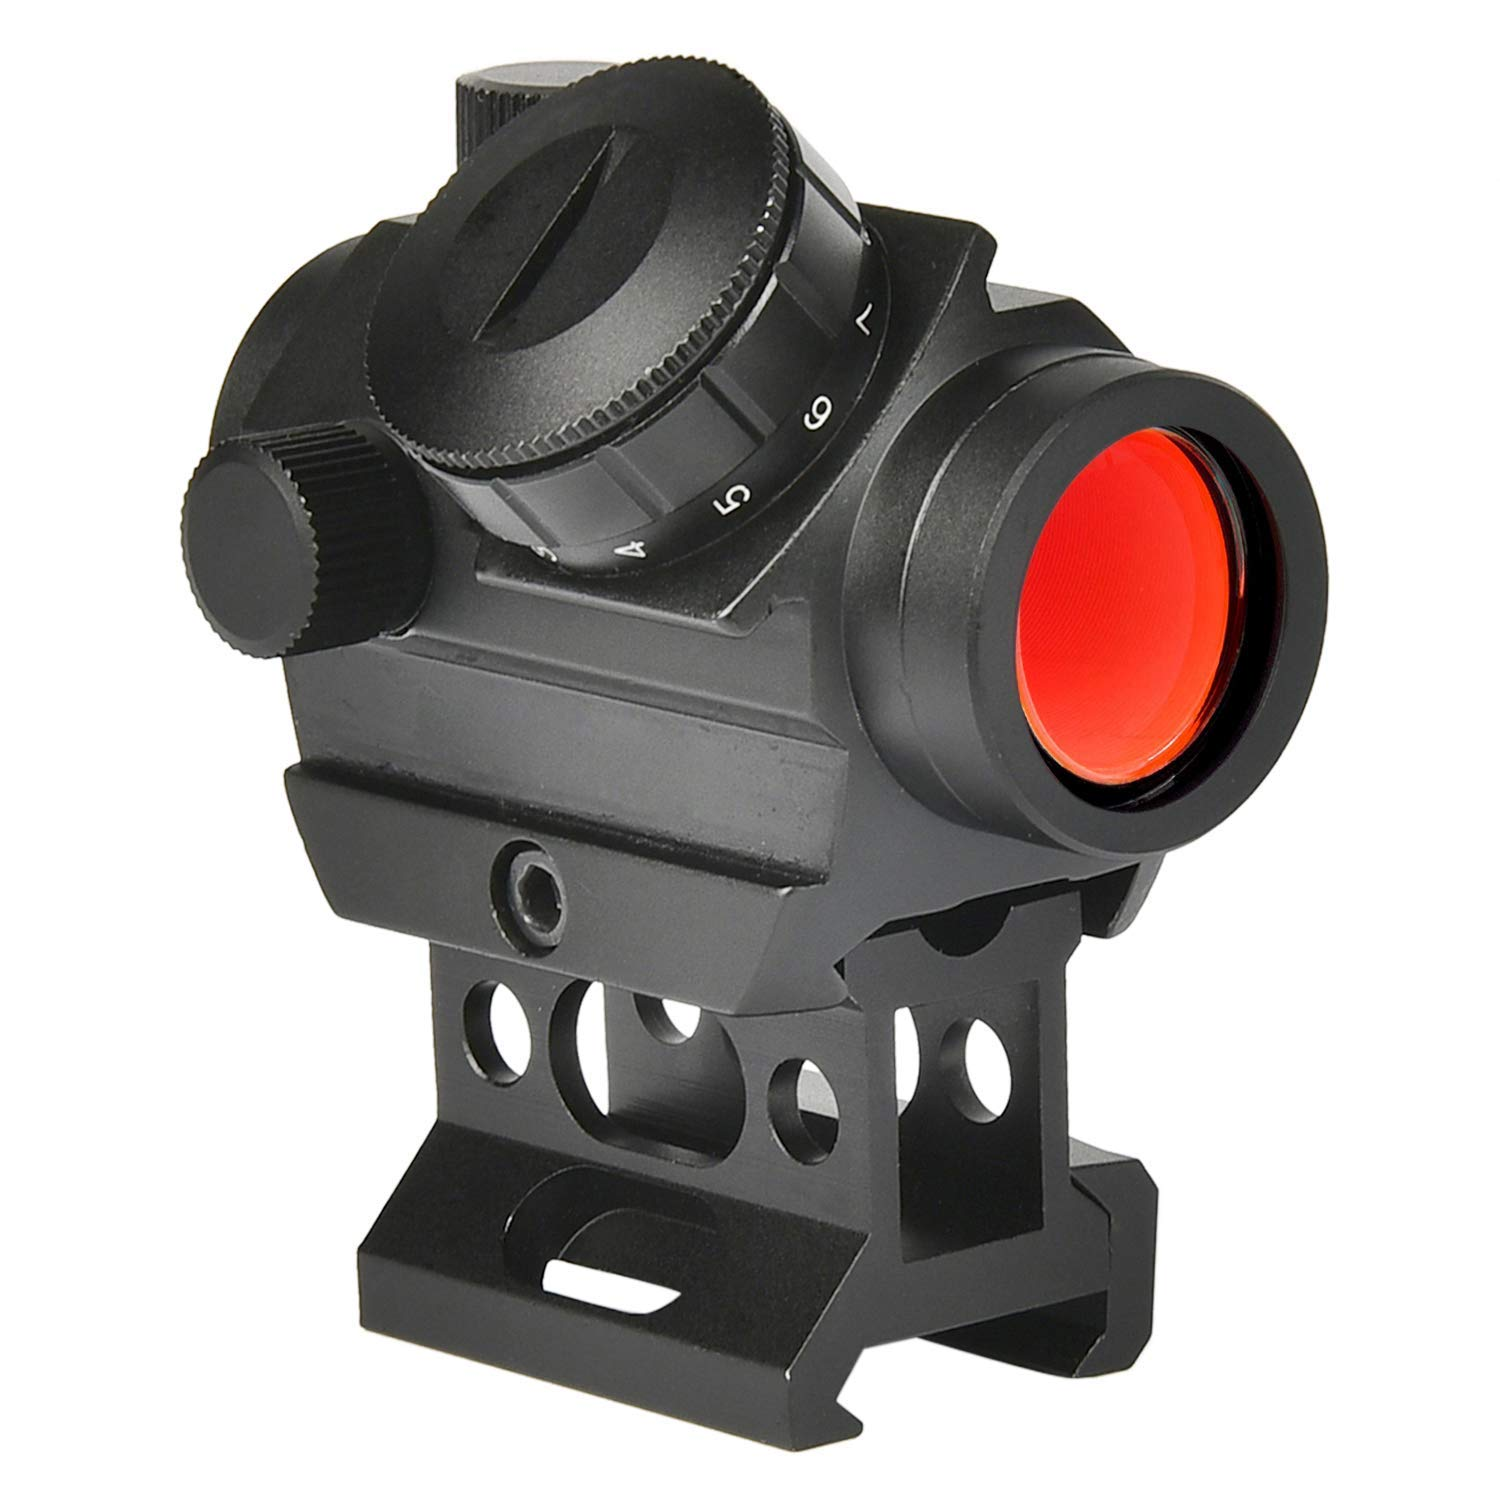 MidTen 2MOA Micro Red Dot Sight 1x25mm Reflex Sight Waterproof & Shockproof & Fog-Proof Red Dot Scope, Mini Rifle Scope with 1 inch Riser Mount, Black by MidTen